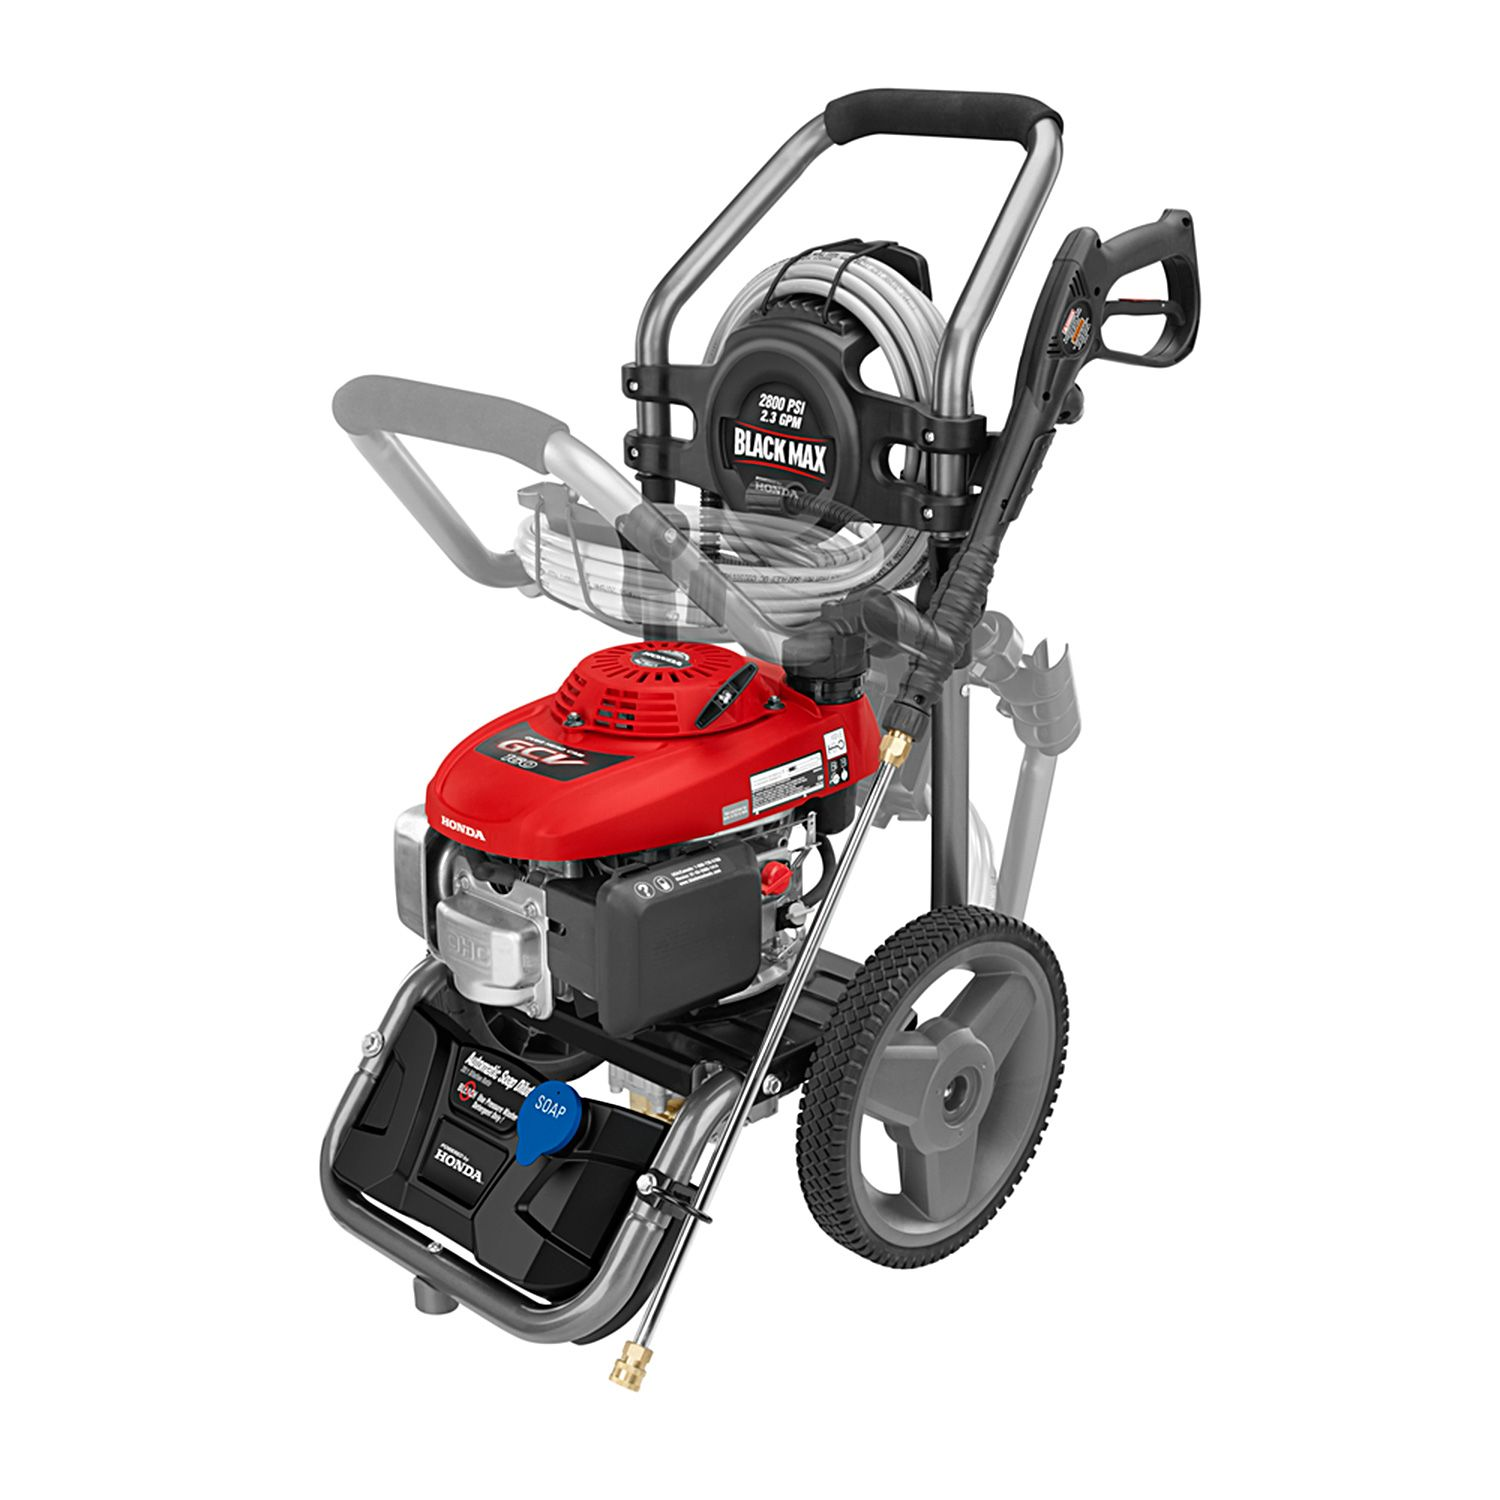 Black Max 2 800 Psi Gasoline Pressure Washer By Honda